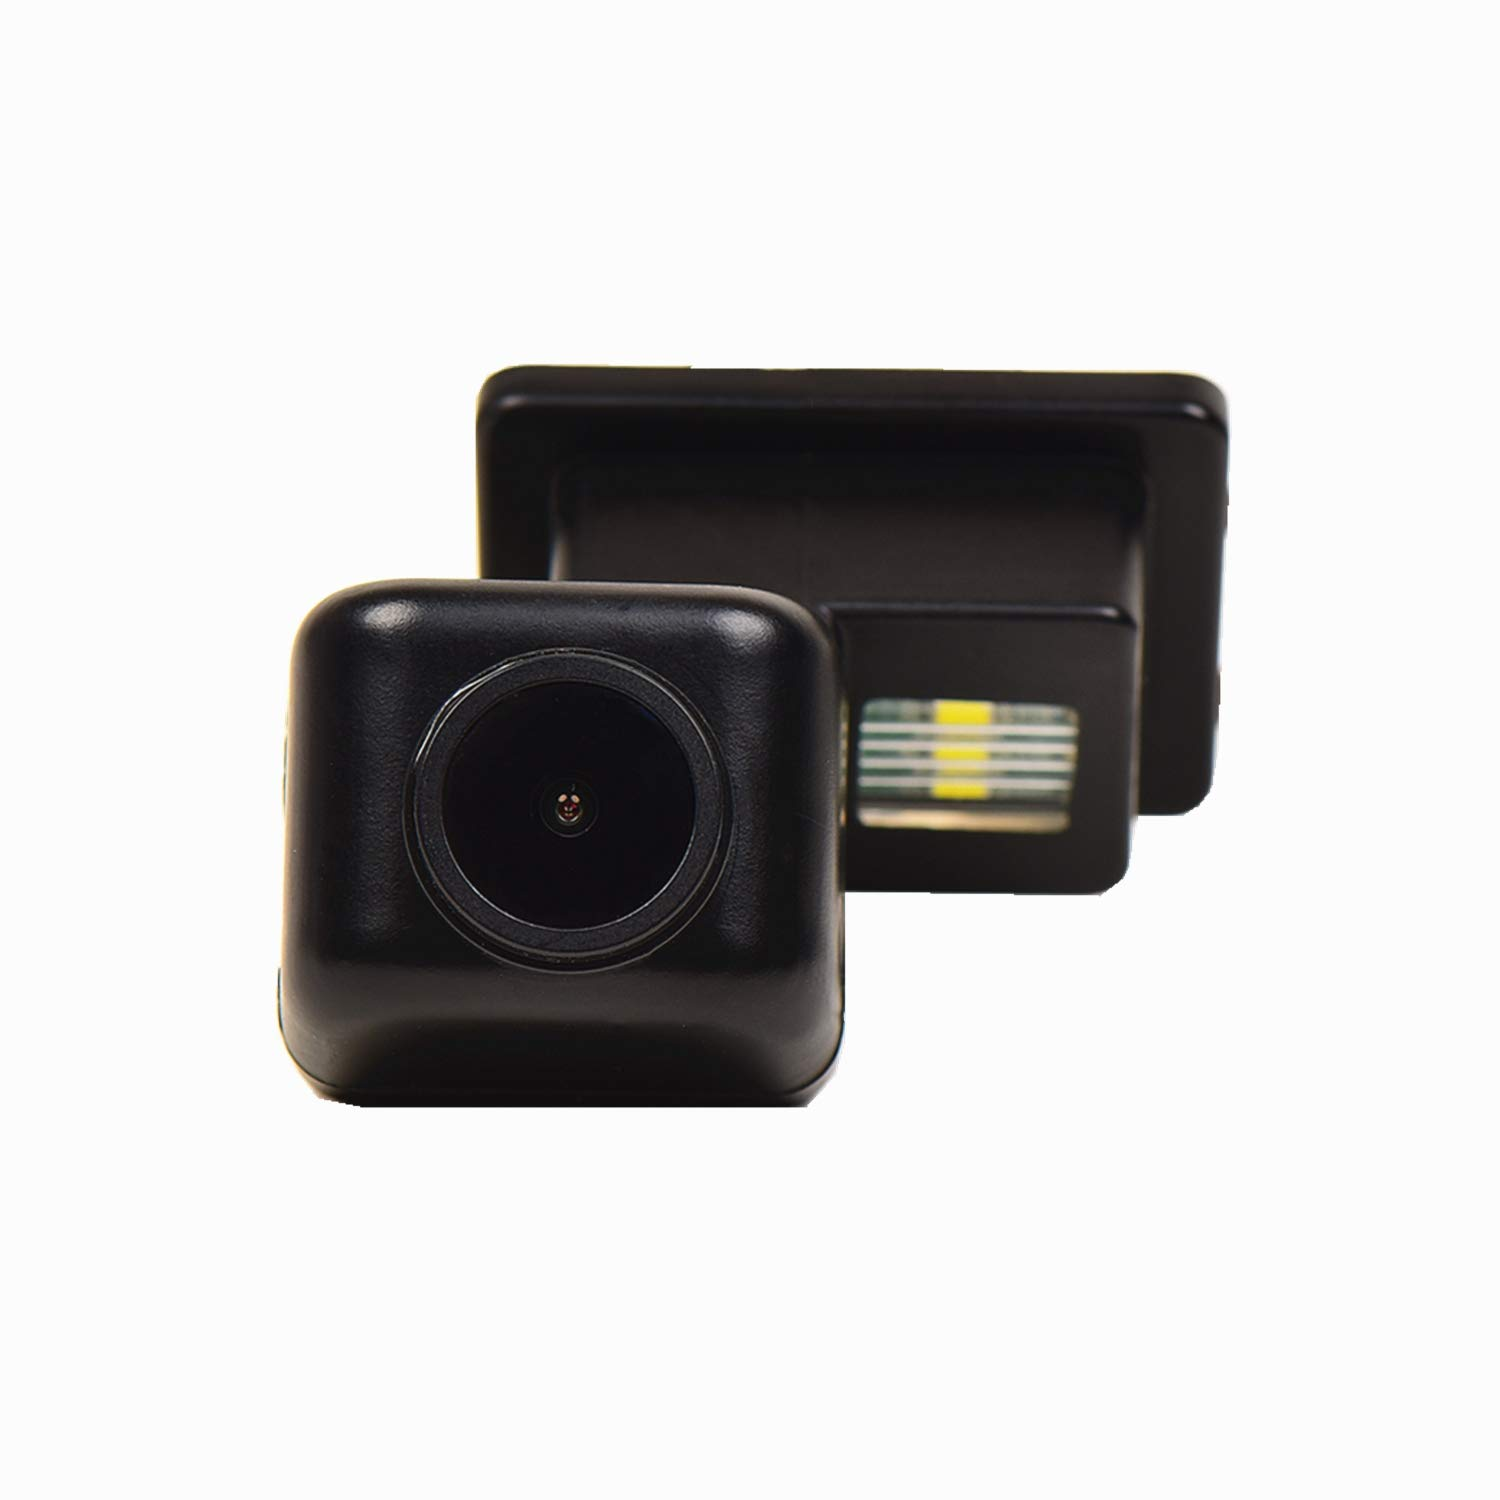 Rear Reversing Backup Camera Rearview License Plate Replacement Camera Night Vision Ip69k Waterproof for Mercedes Benz C CL CLS Class W204// C180//C200//C280//C300//C350//C63 AMG//C204// S204// W216 W204